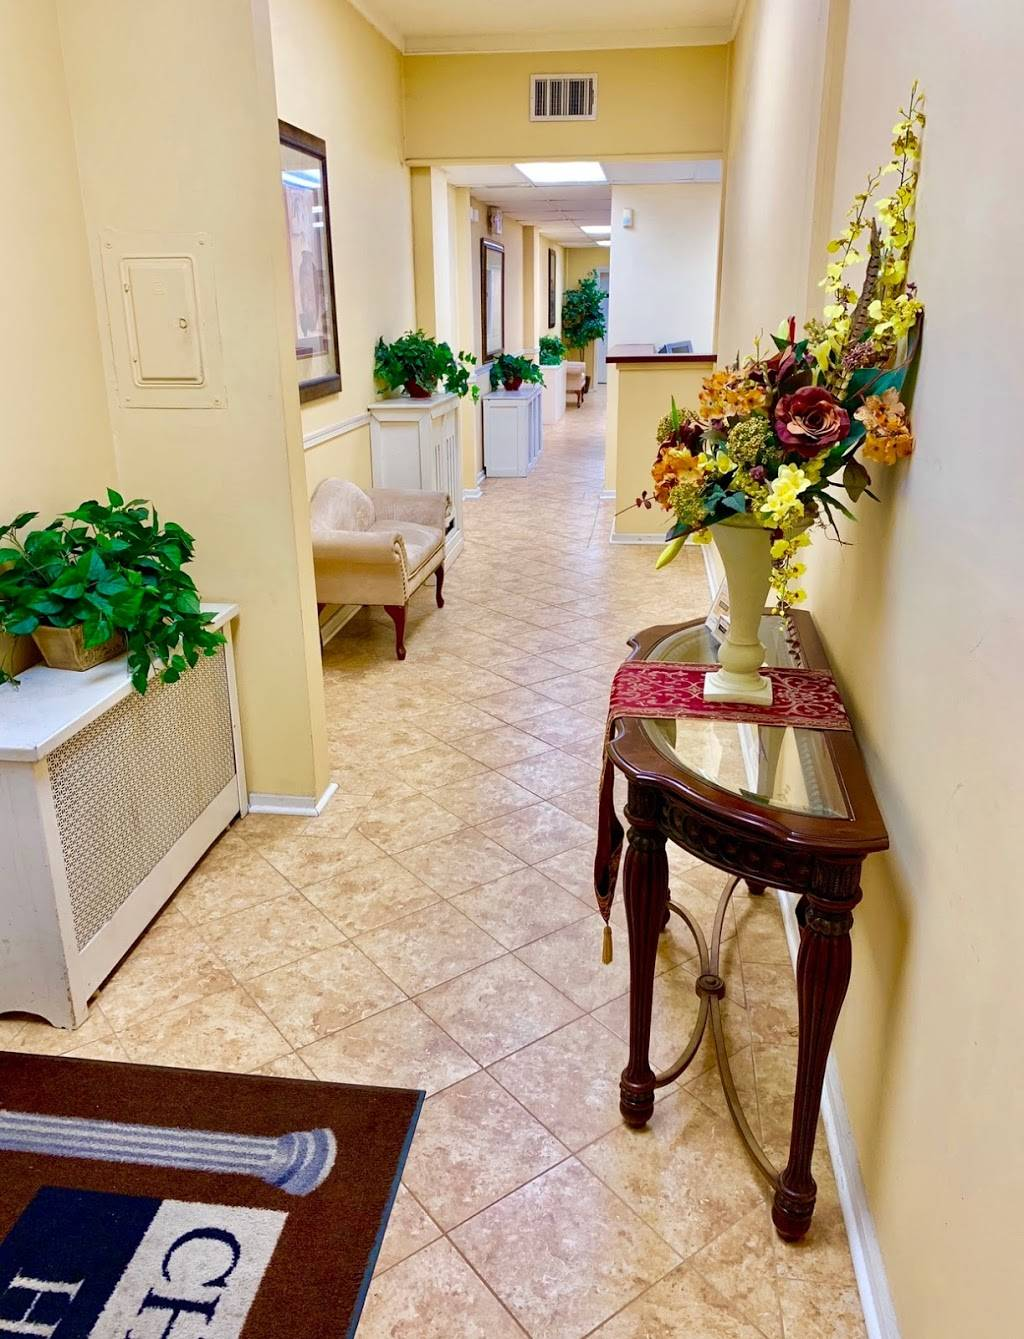 Chatman Harris Funeral Home - funeral home  | Photo 5 of 10 | Address: 4210 Belair Rd, Baltimore, MD 21206, USA | Phone: (410) 488-5947